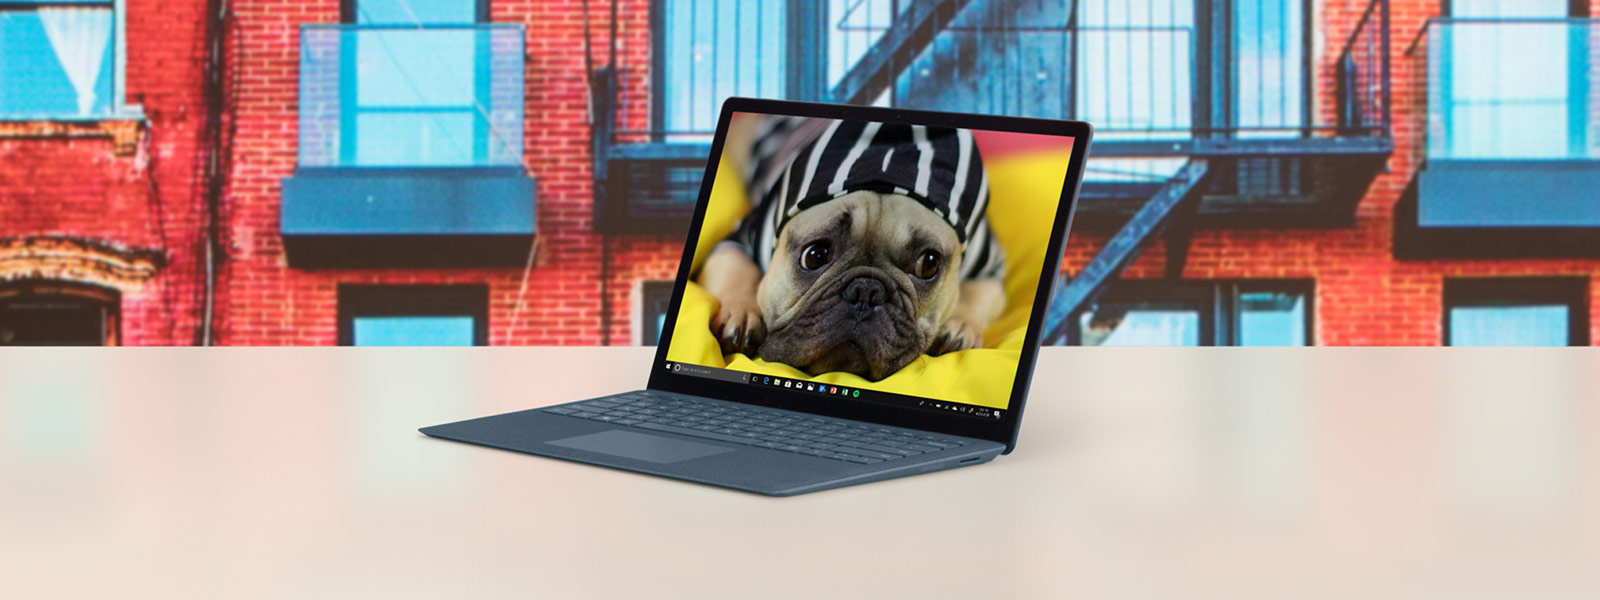 Cobalt Blue Surface Laptop showing a dog on the screen and colorful buildings in the background.